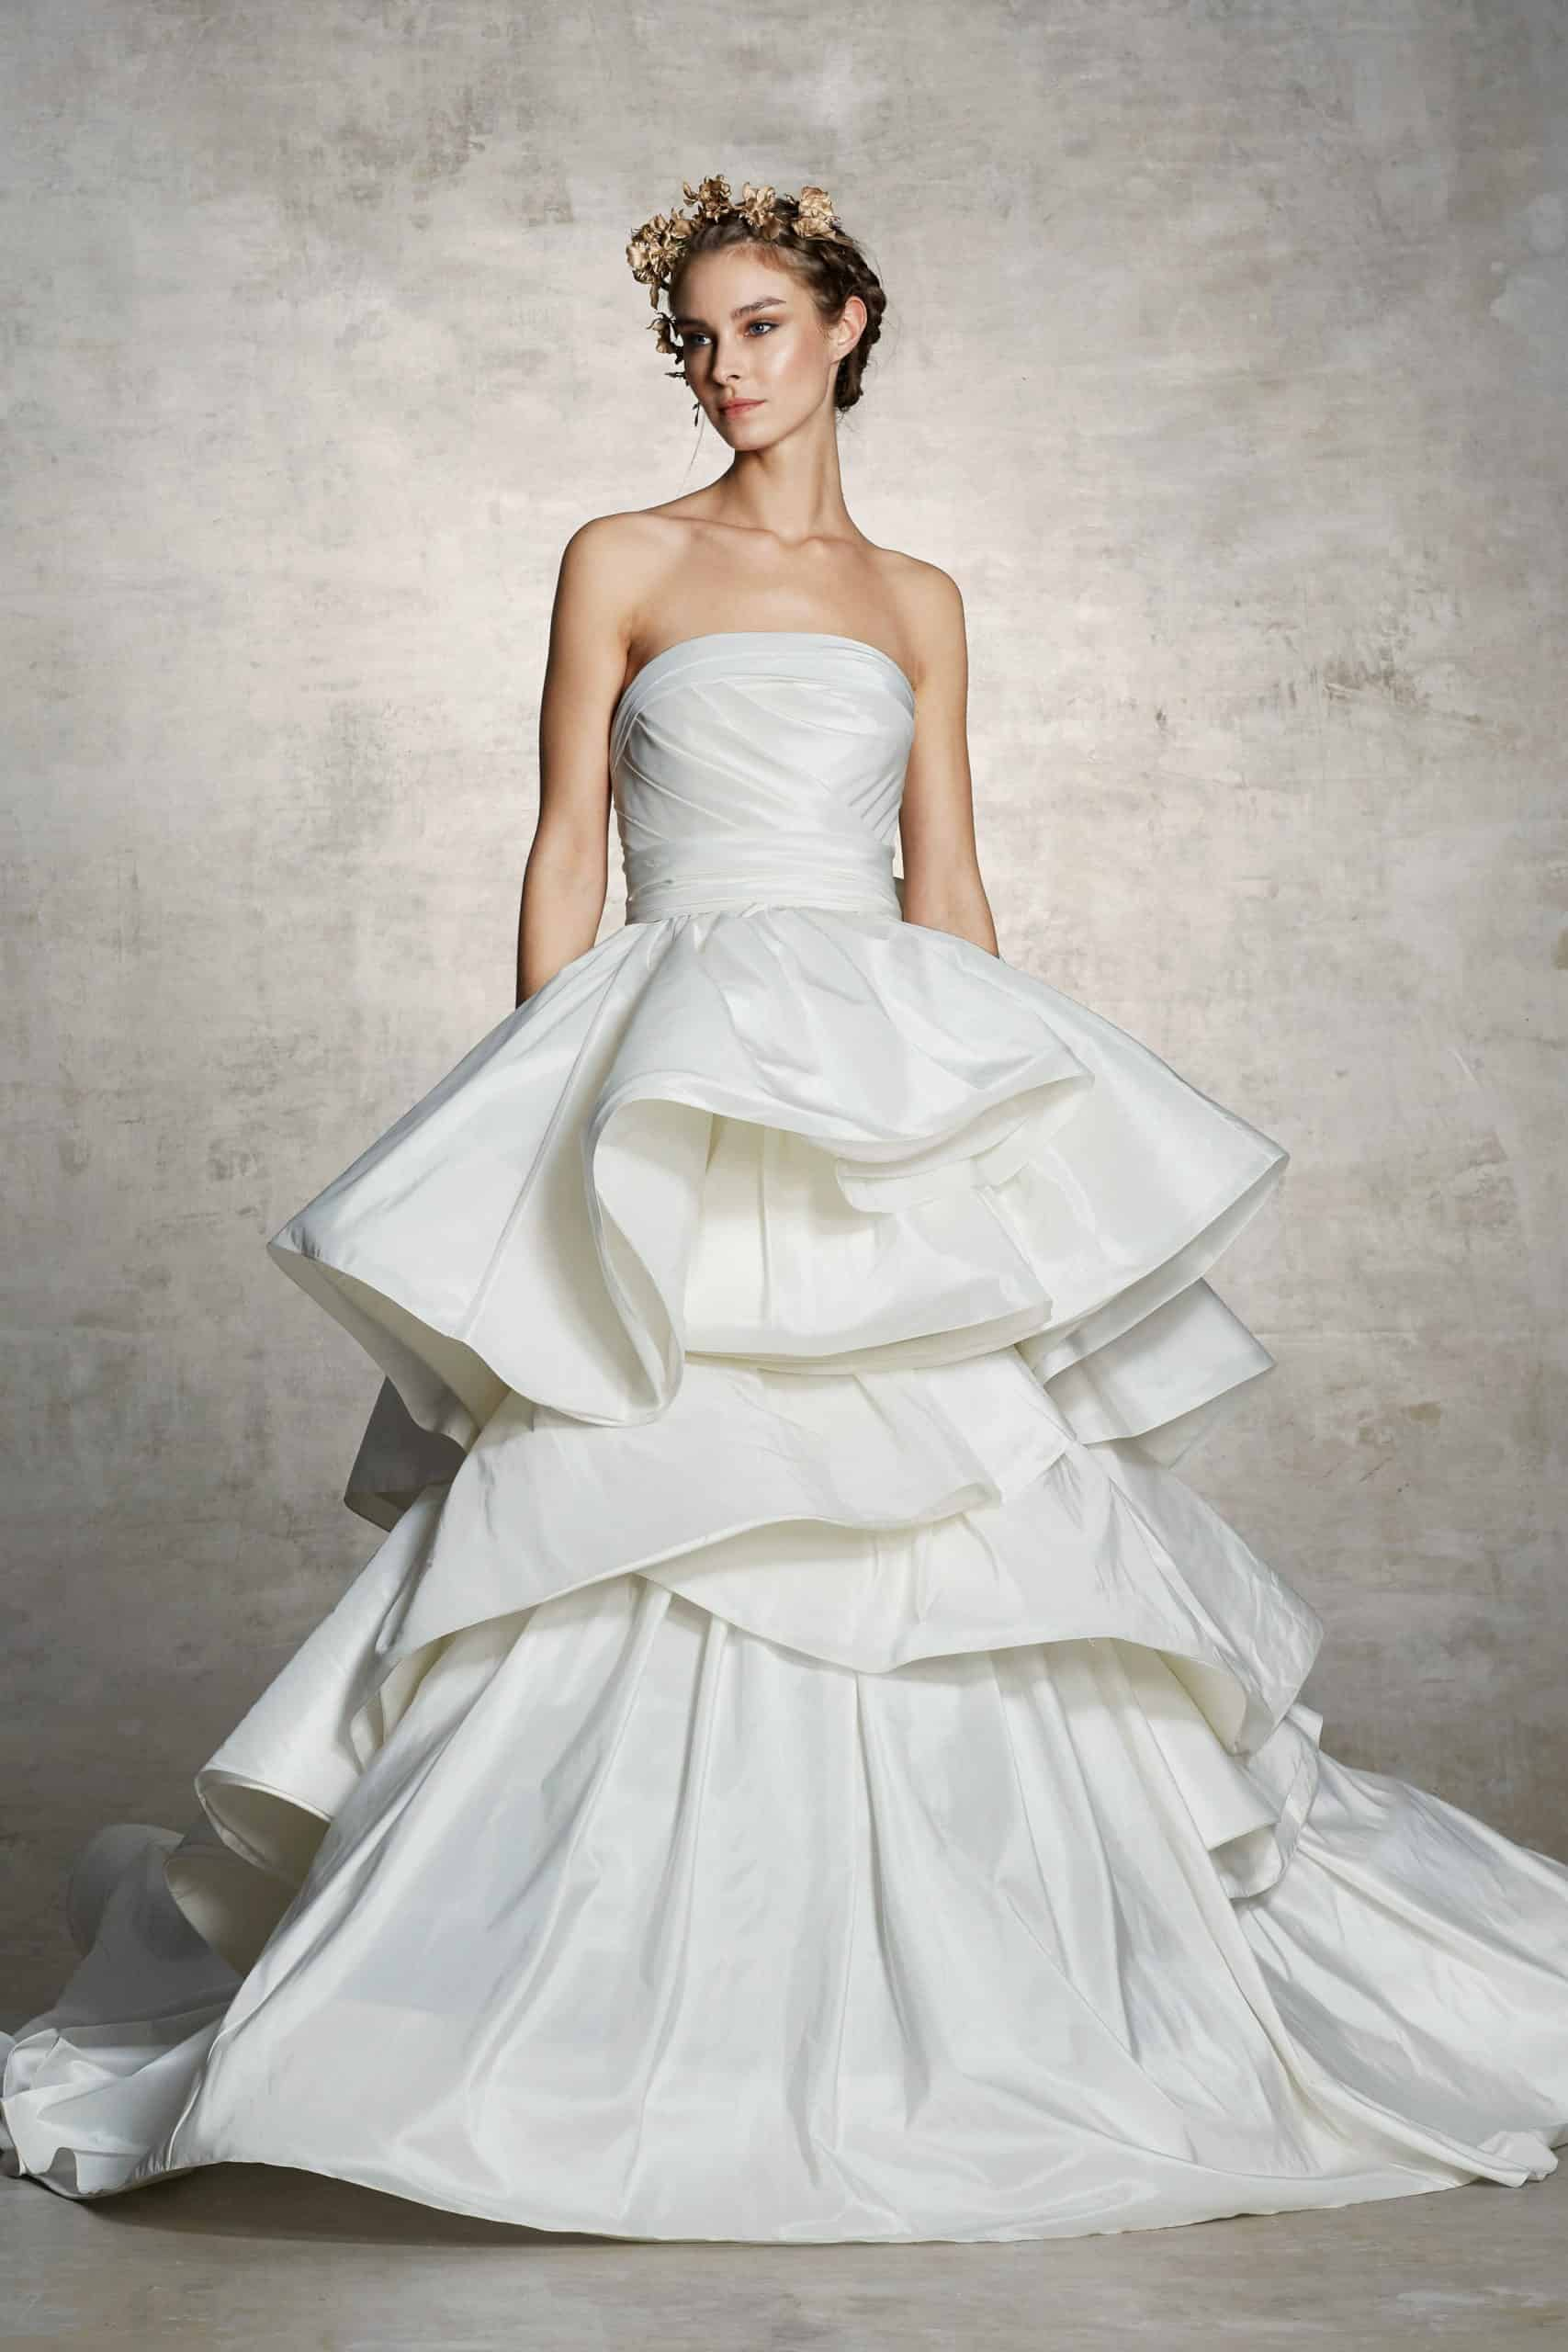 wedding dress with layers skirt by Marchesa